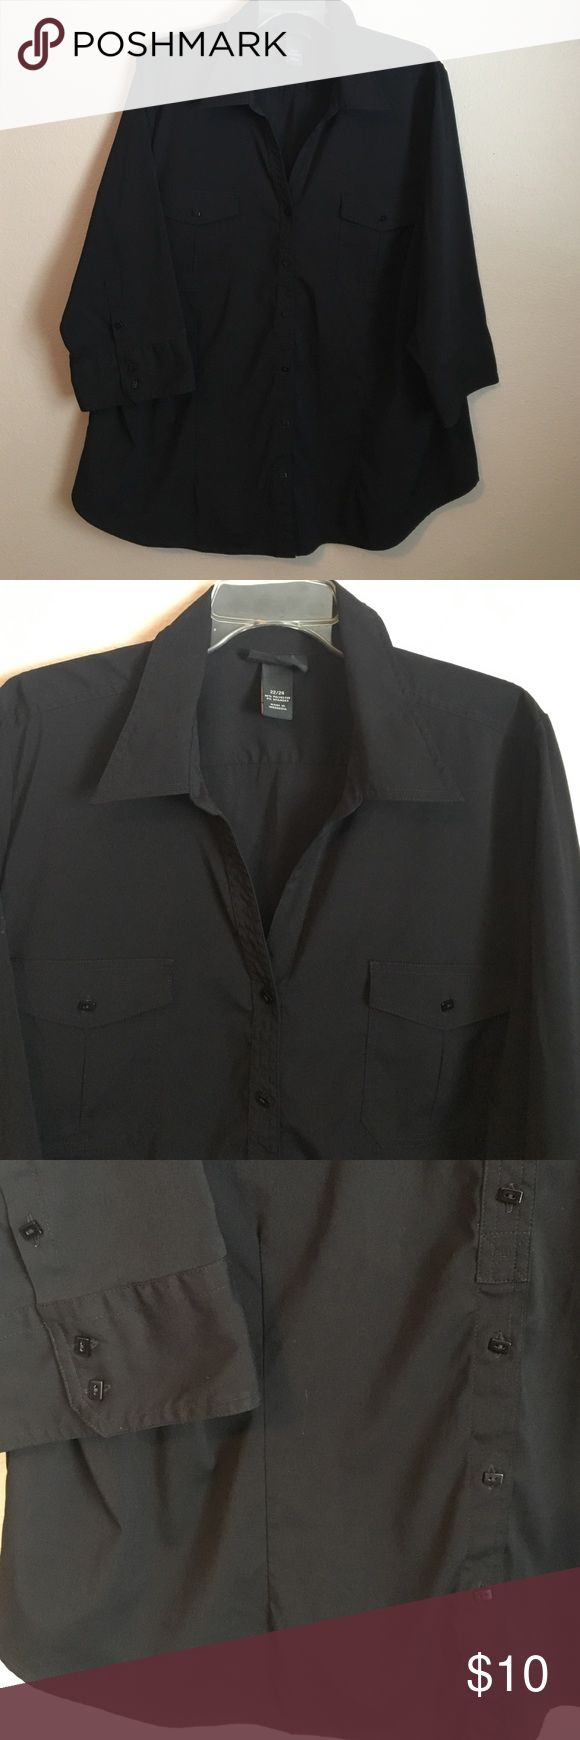 Black Professional Blouse Plus Size Black Professional Blouse is made of Polyester and Spandex to hold shape and give you that crisp fresh look. Is is Size 22/24. Lane Bryant Tops Button Down Shirts